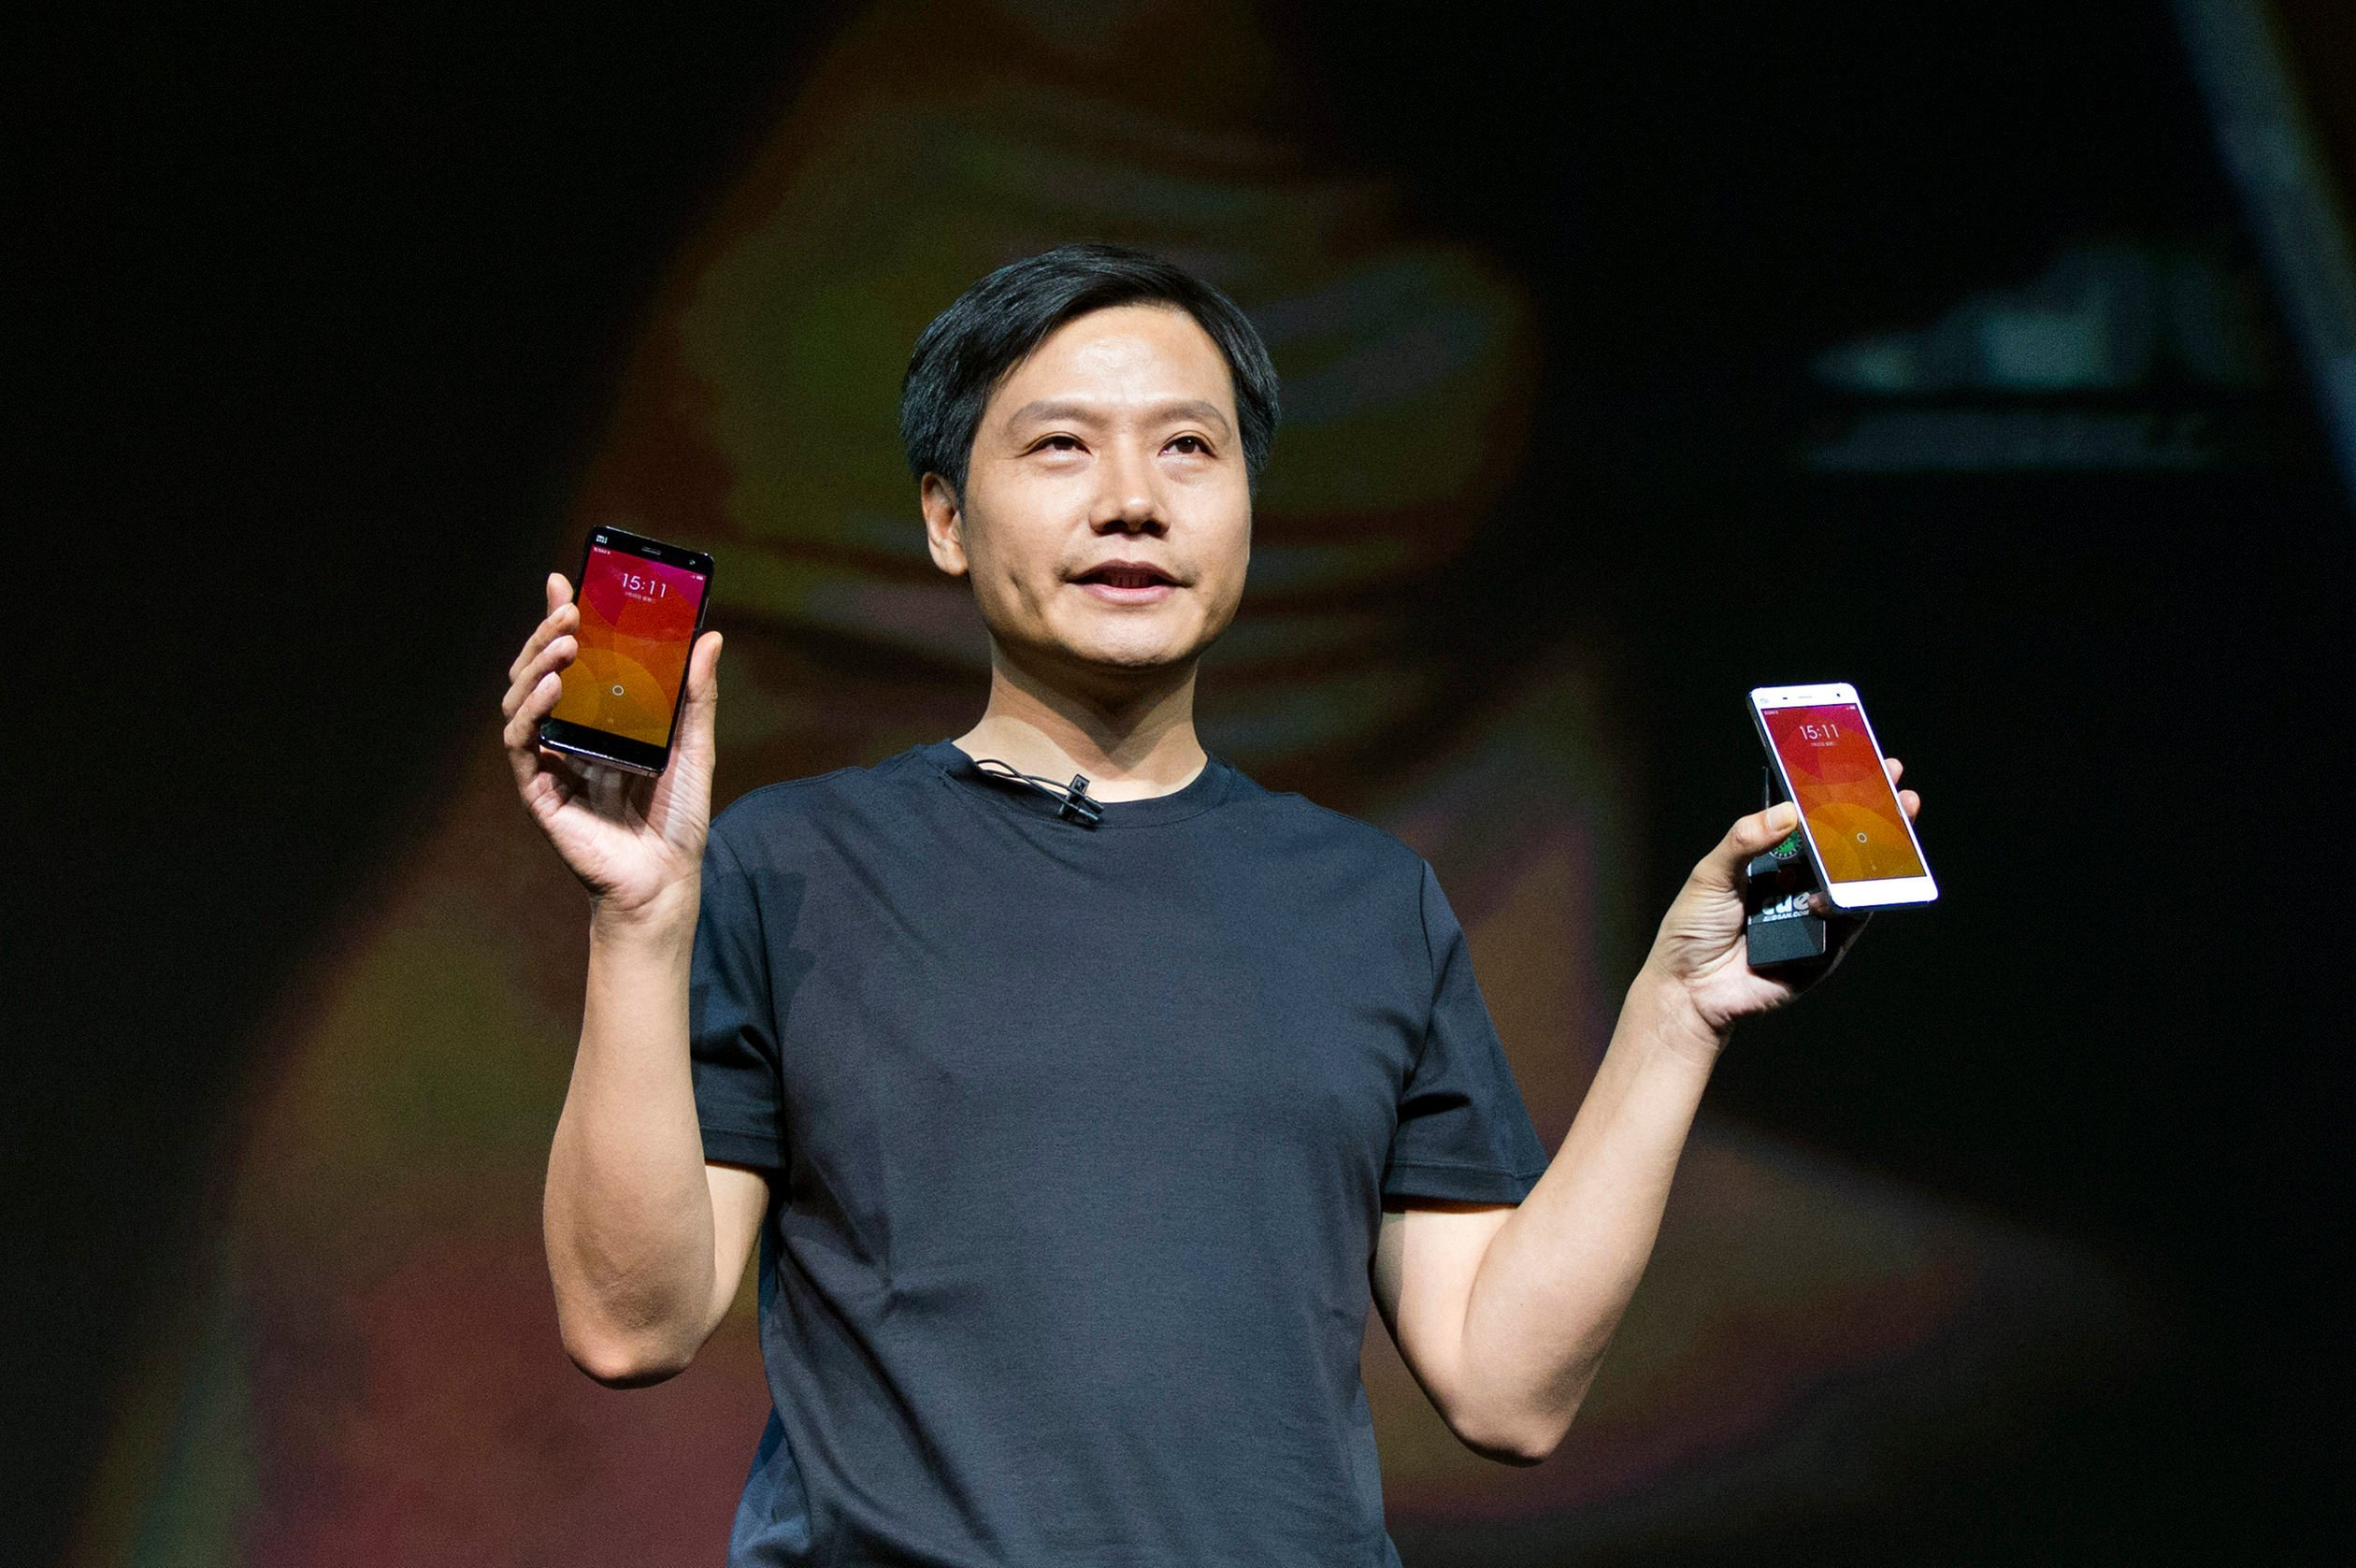 Xiaomi change de direction : le chef de Redmi remplace Lei Jun